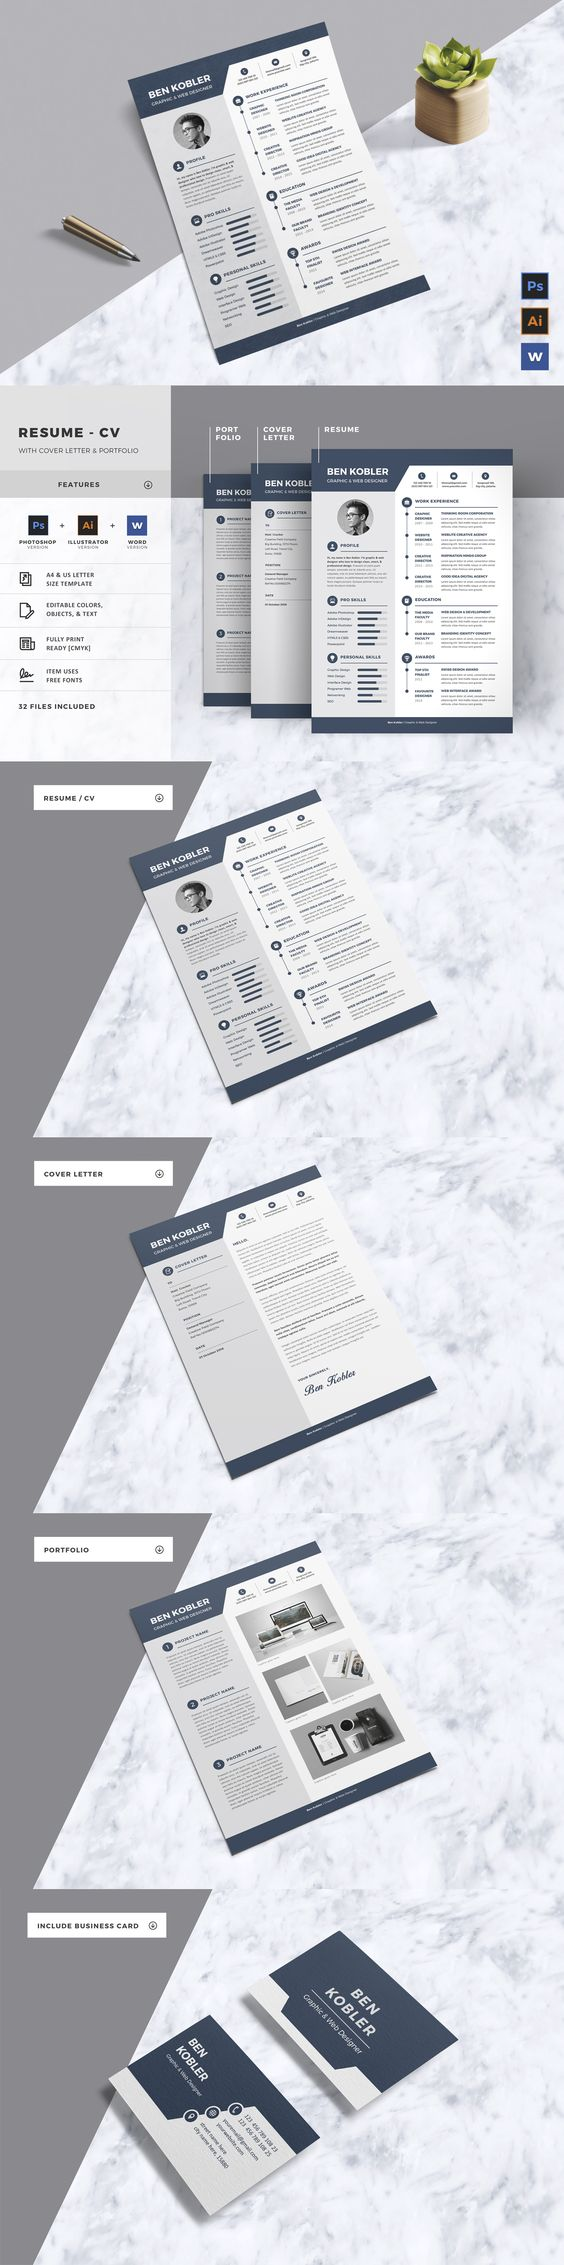 resume cv is a professional clean creative resume template resume cv graphic templates by leaflove subscribe to envato elements for unlimited graphic templates s for a single monthly fee